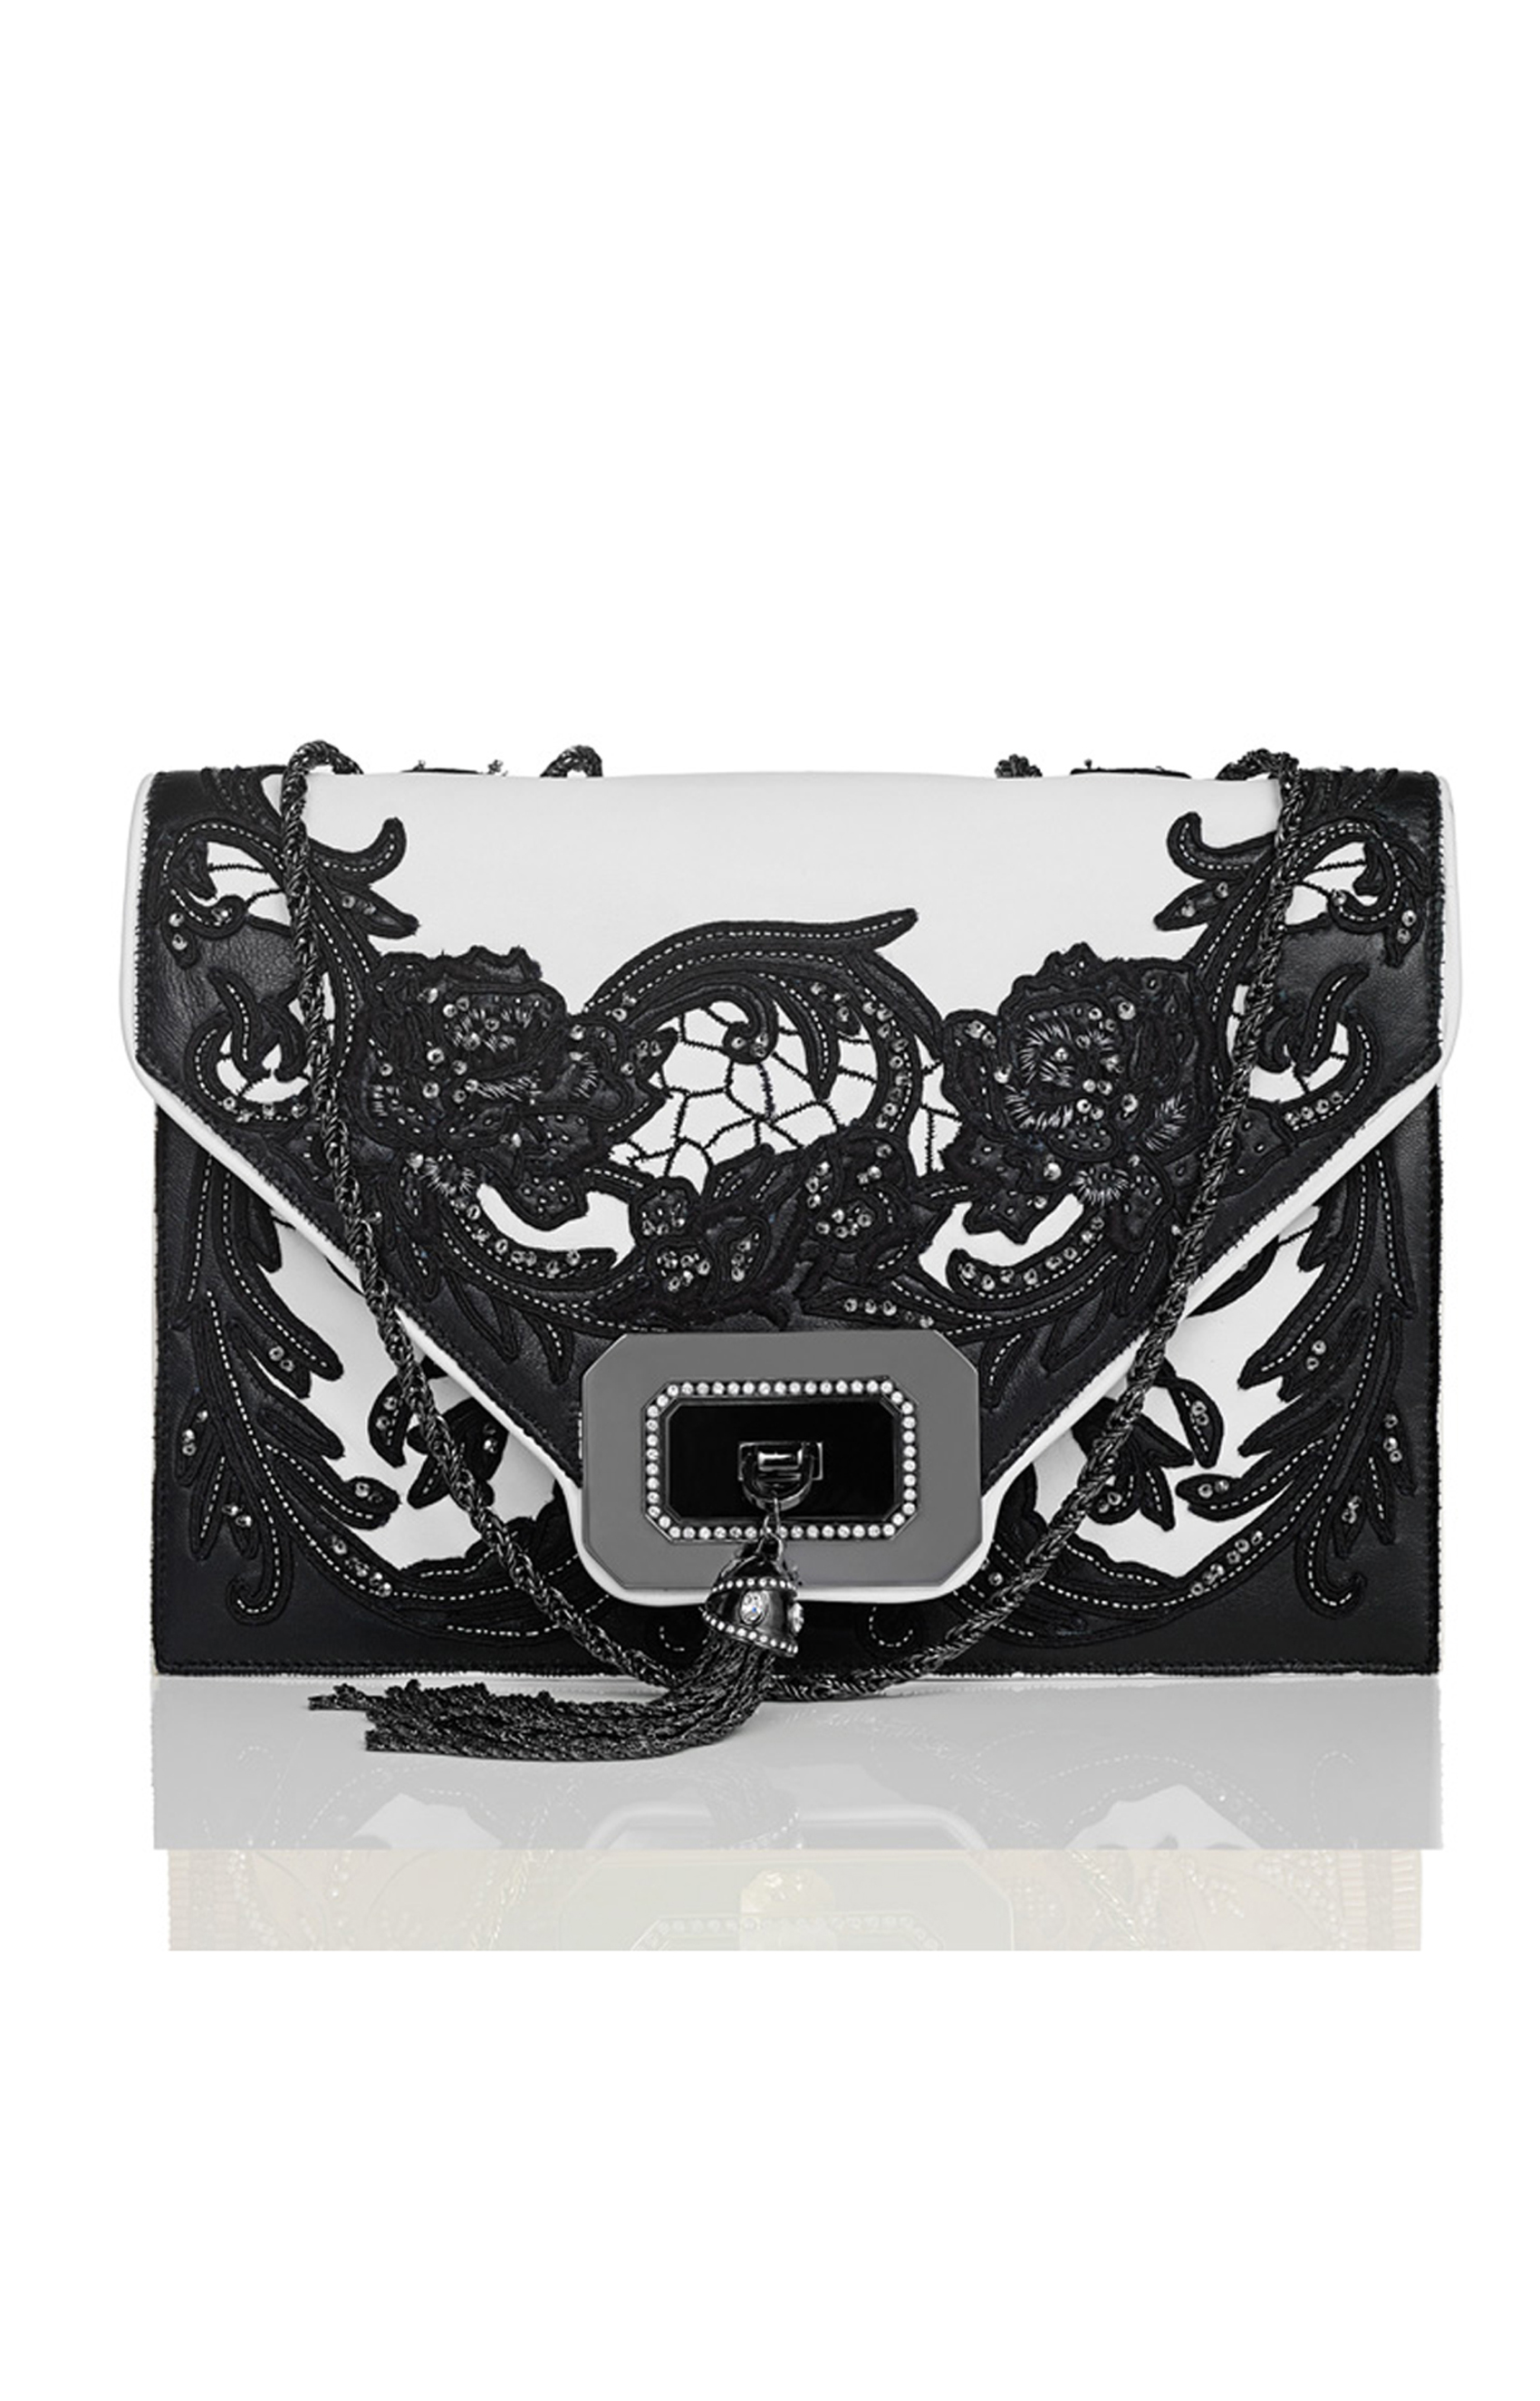 Marchesa <br>Handbag 11